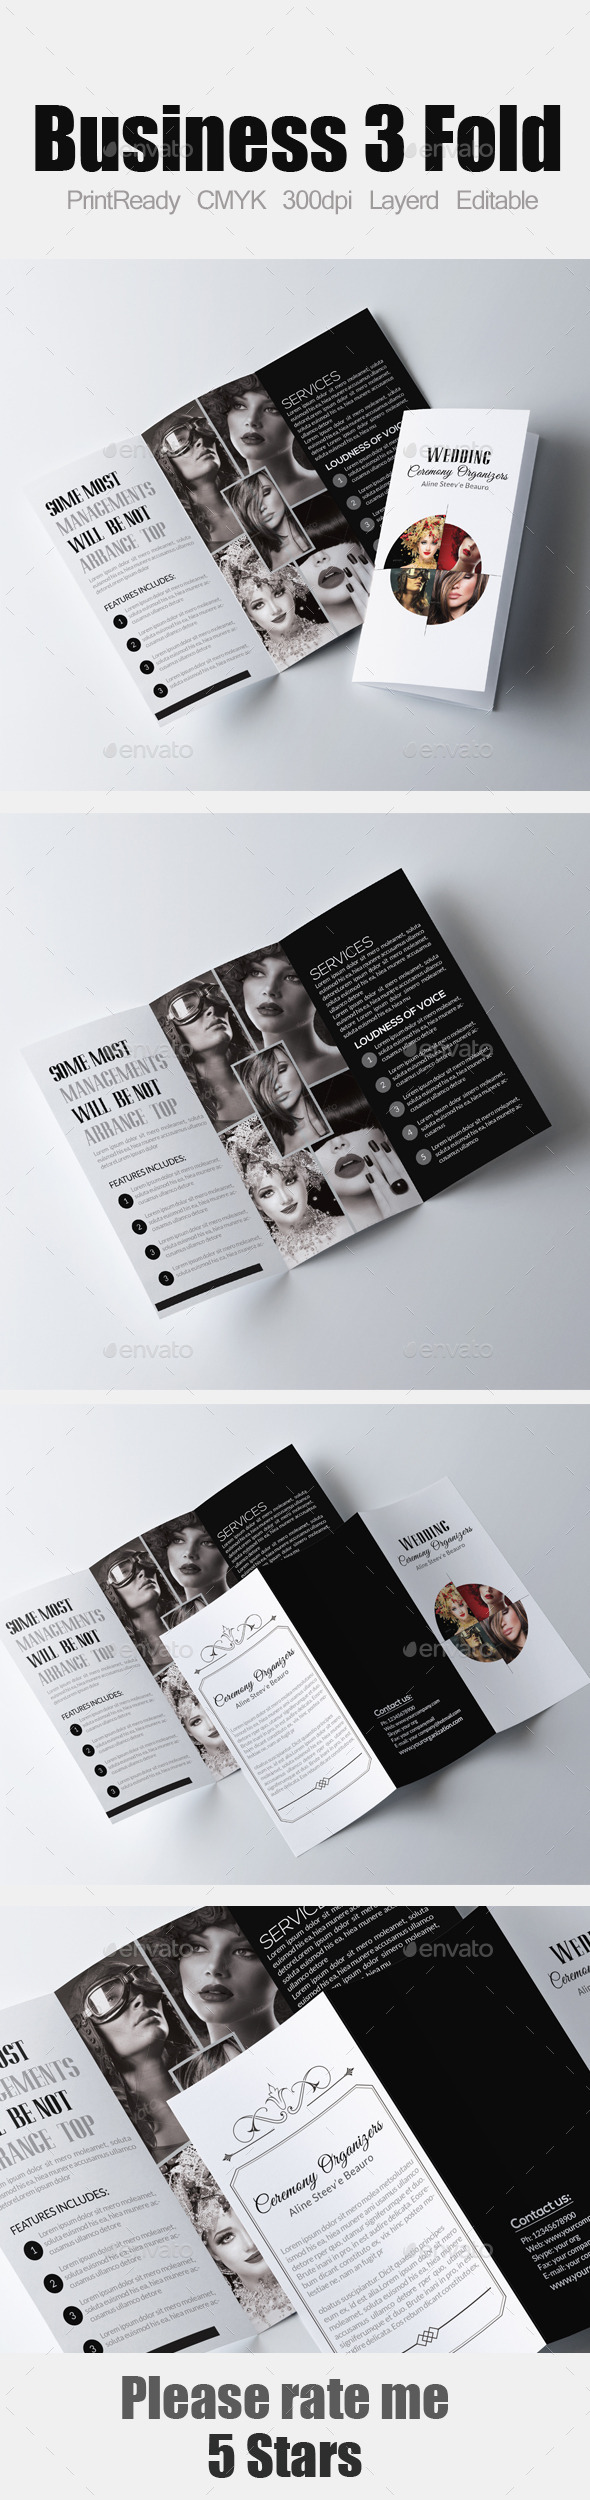 Photography Tri Fold Business Brochure - Corporate Brochures